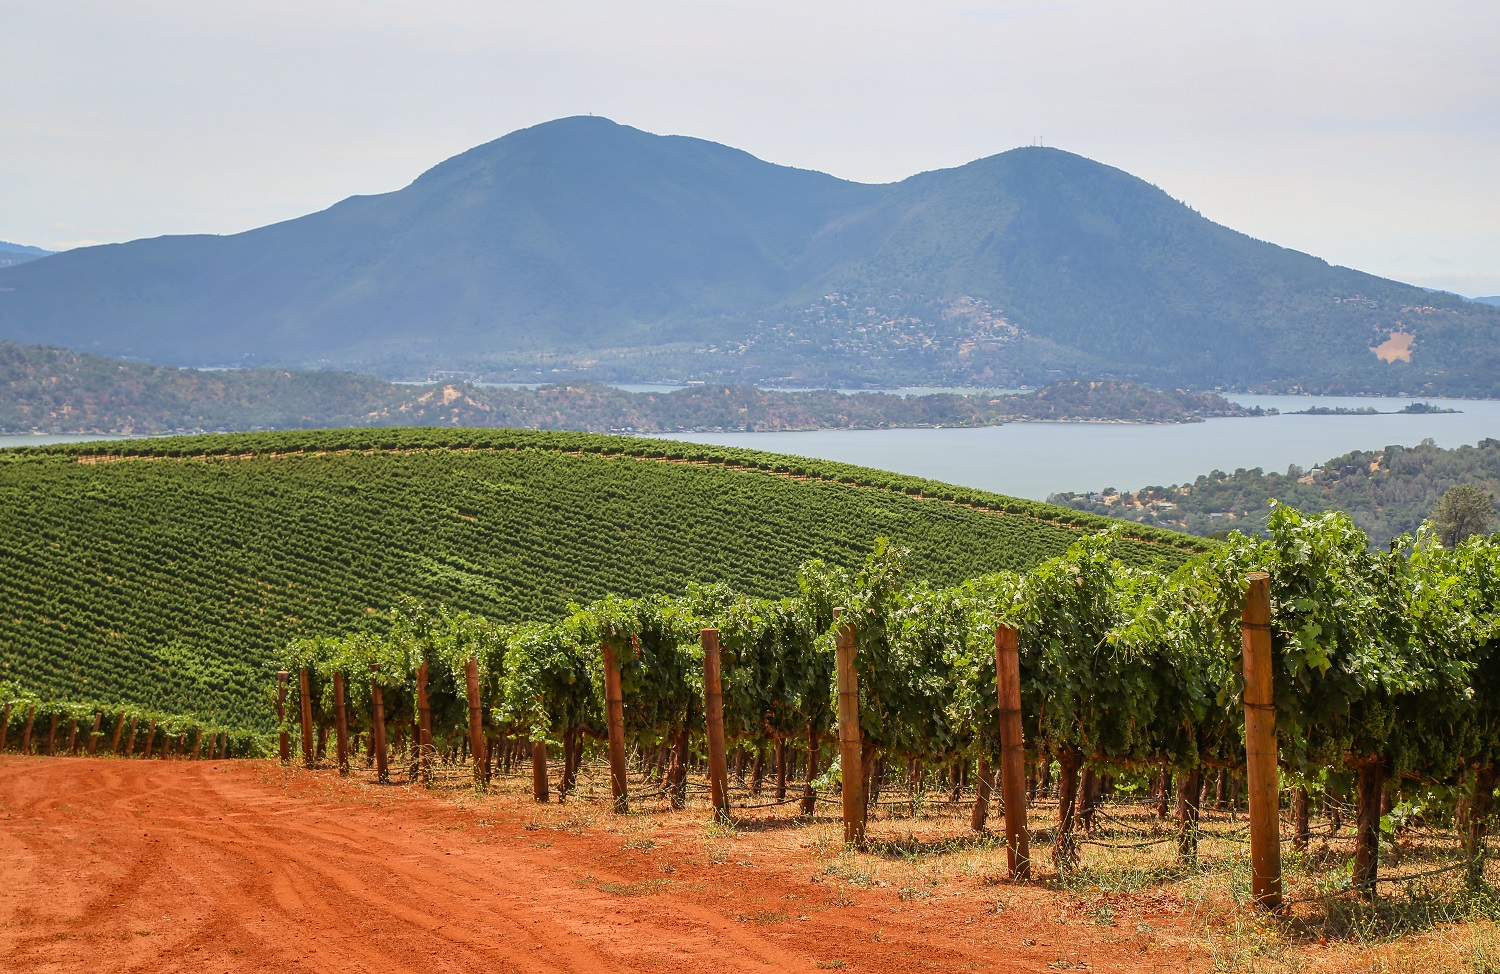 Red dirt, vineyards, lake, mountain